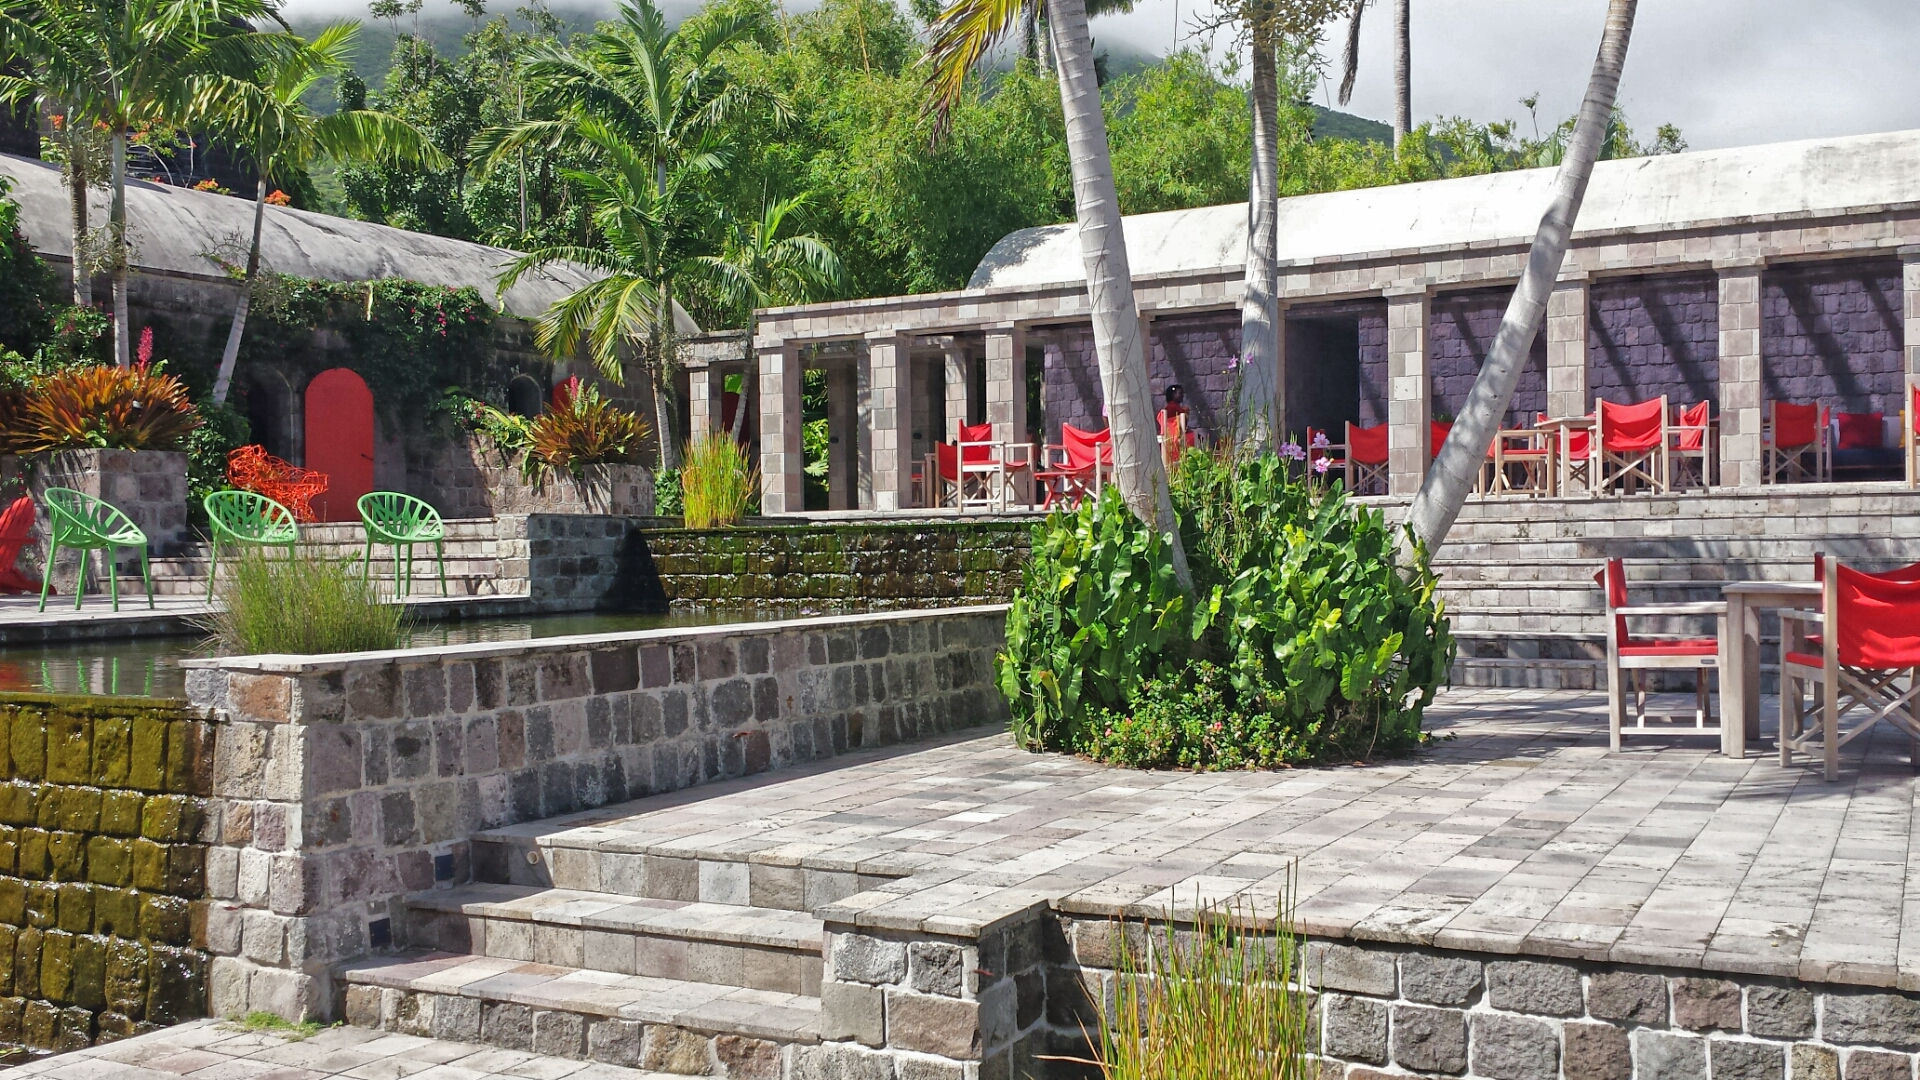 2014 11 14 12.41.38 Why You Should Visit Nevis West Indies | Queen of the Caribees